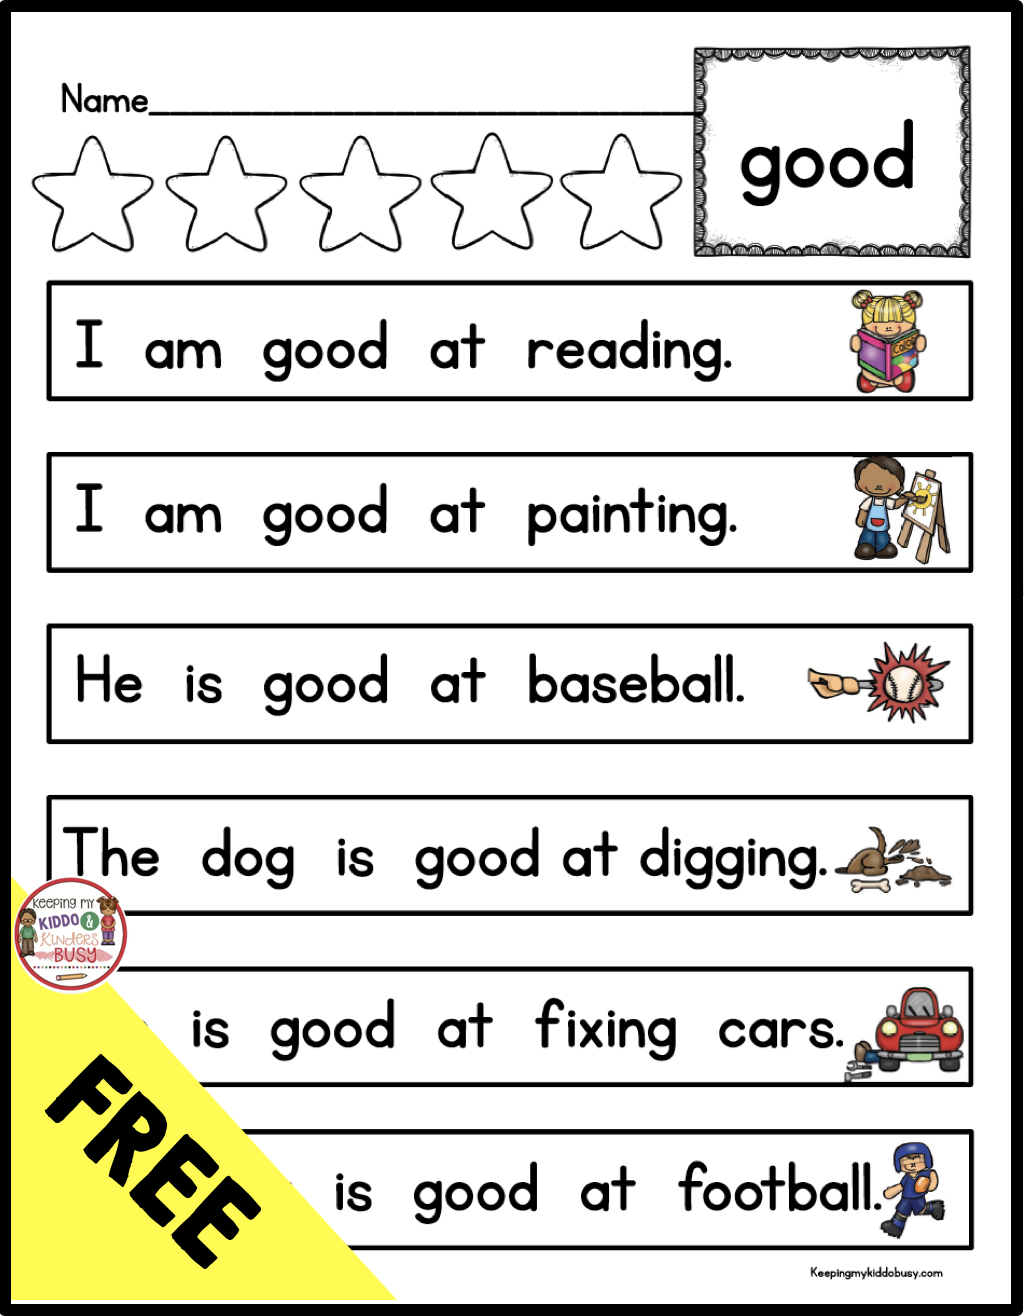 Free Sight Word Fluency Passages Easy Kindergarten Literacy Center Or Small Guided Reading Sight Word Flashcards Sight Word Sentences Sight Words Printables [ 1316 x 1024 Pixel ]